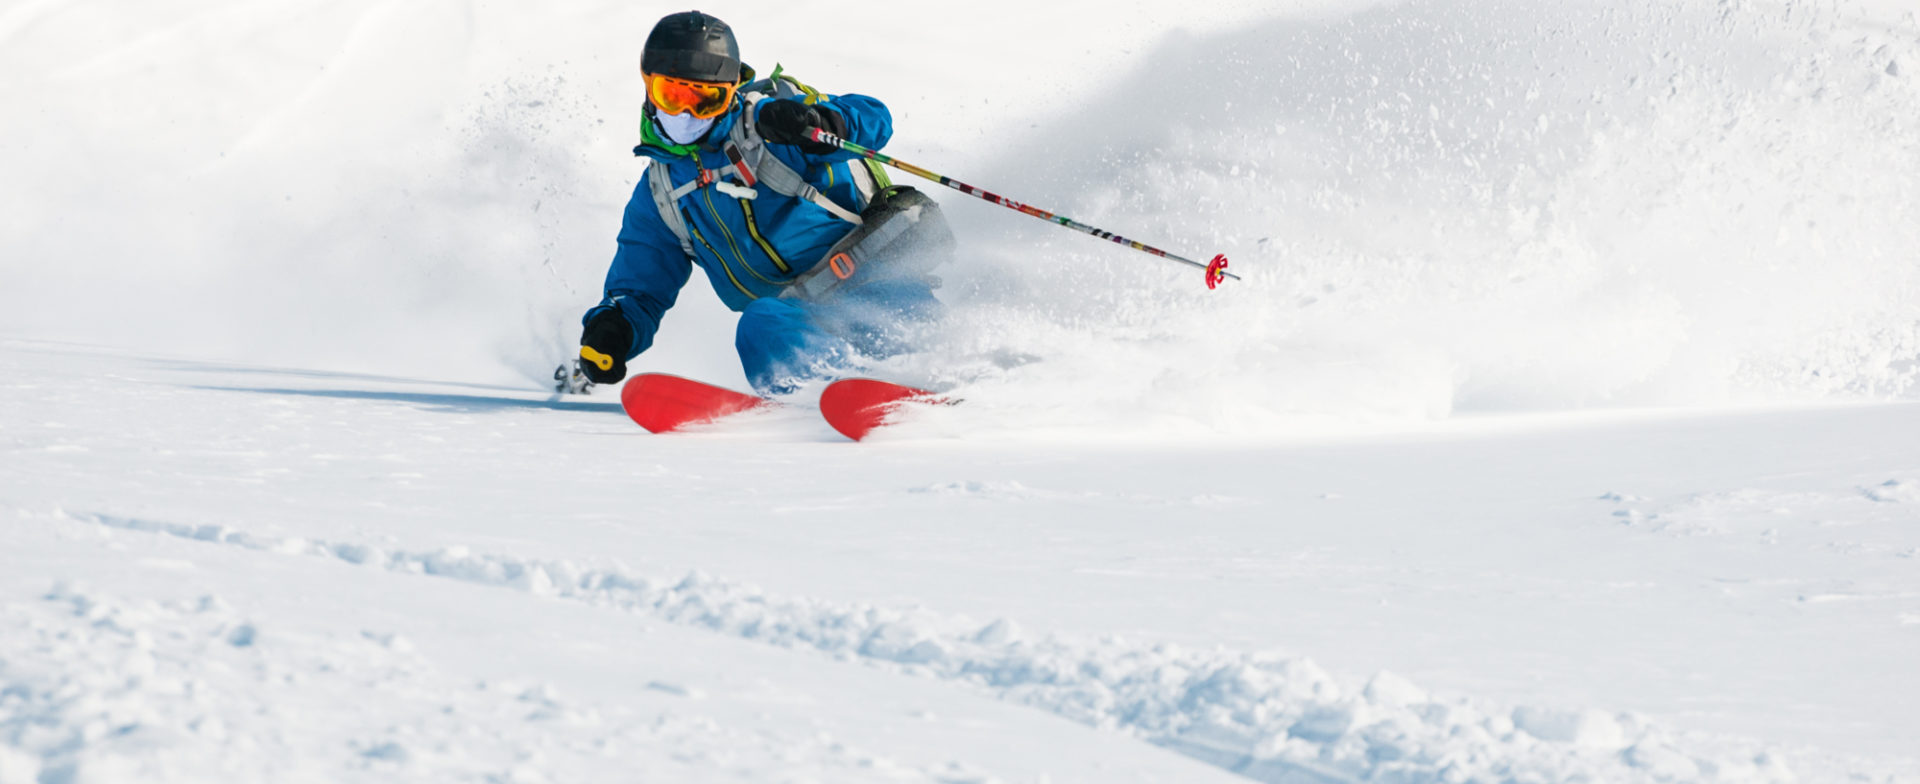 How To Be a Better Skier - 10 Tips – Carv